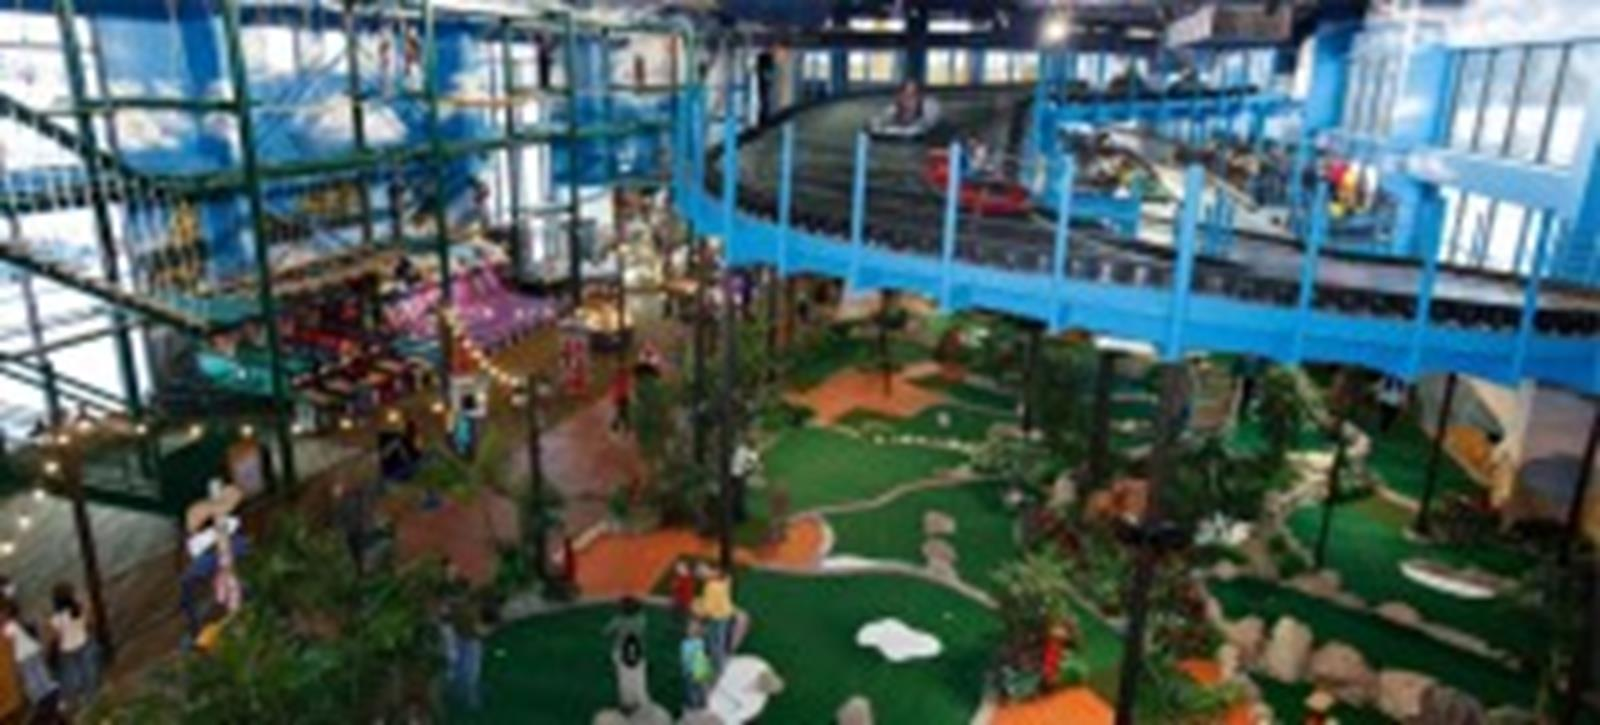 Wisconsin Dells Golf Wisconsin Dells Resort: Adventure Awaits Students At Wisconsin Dells